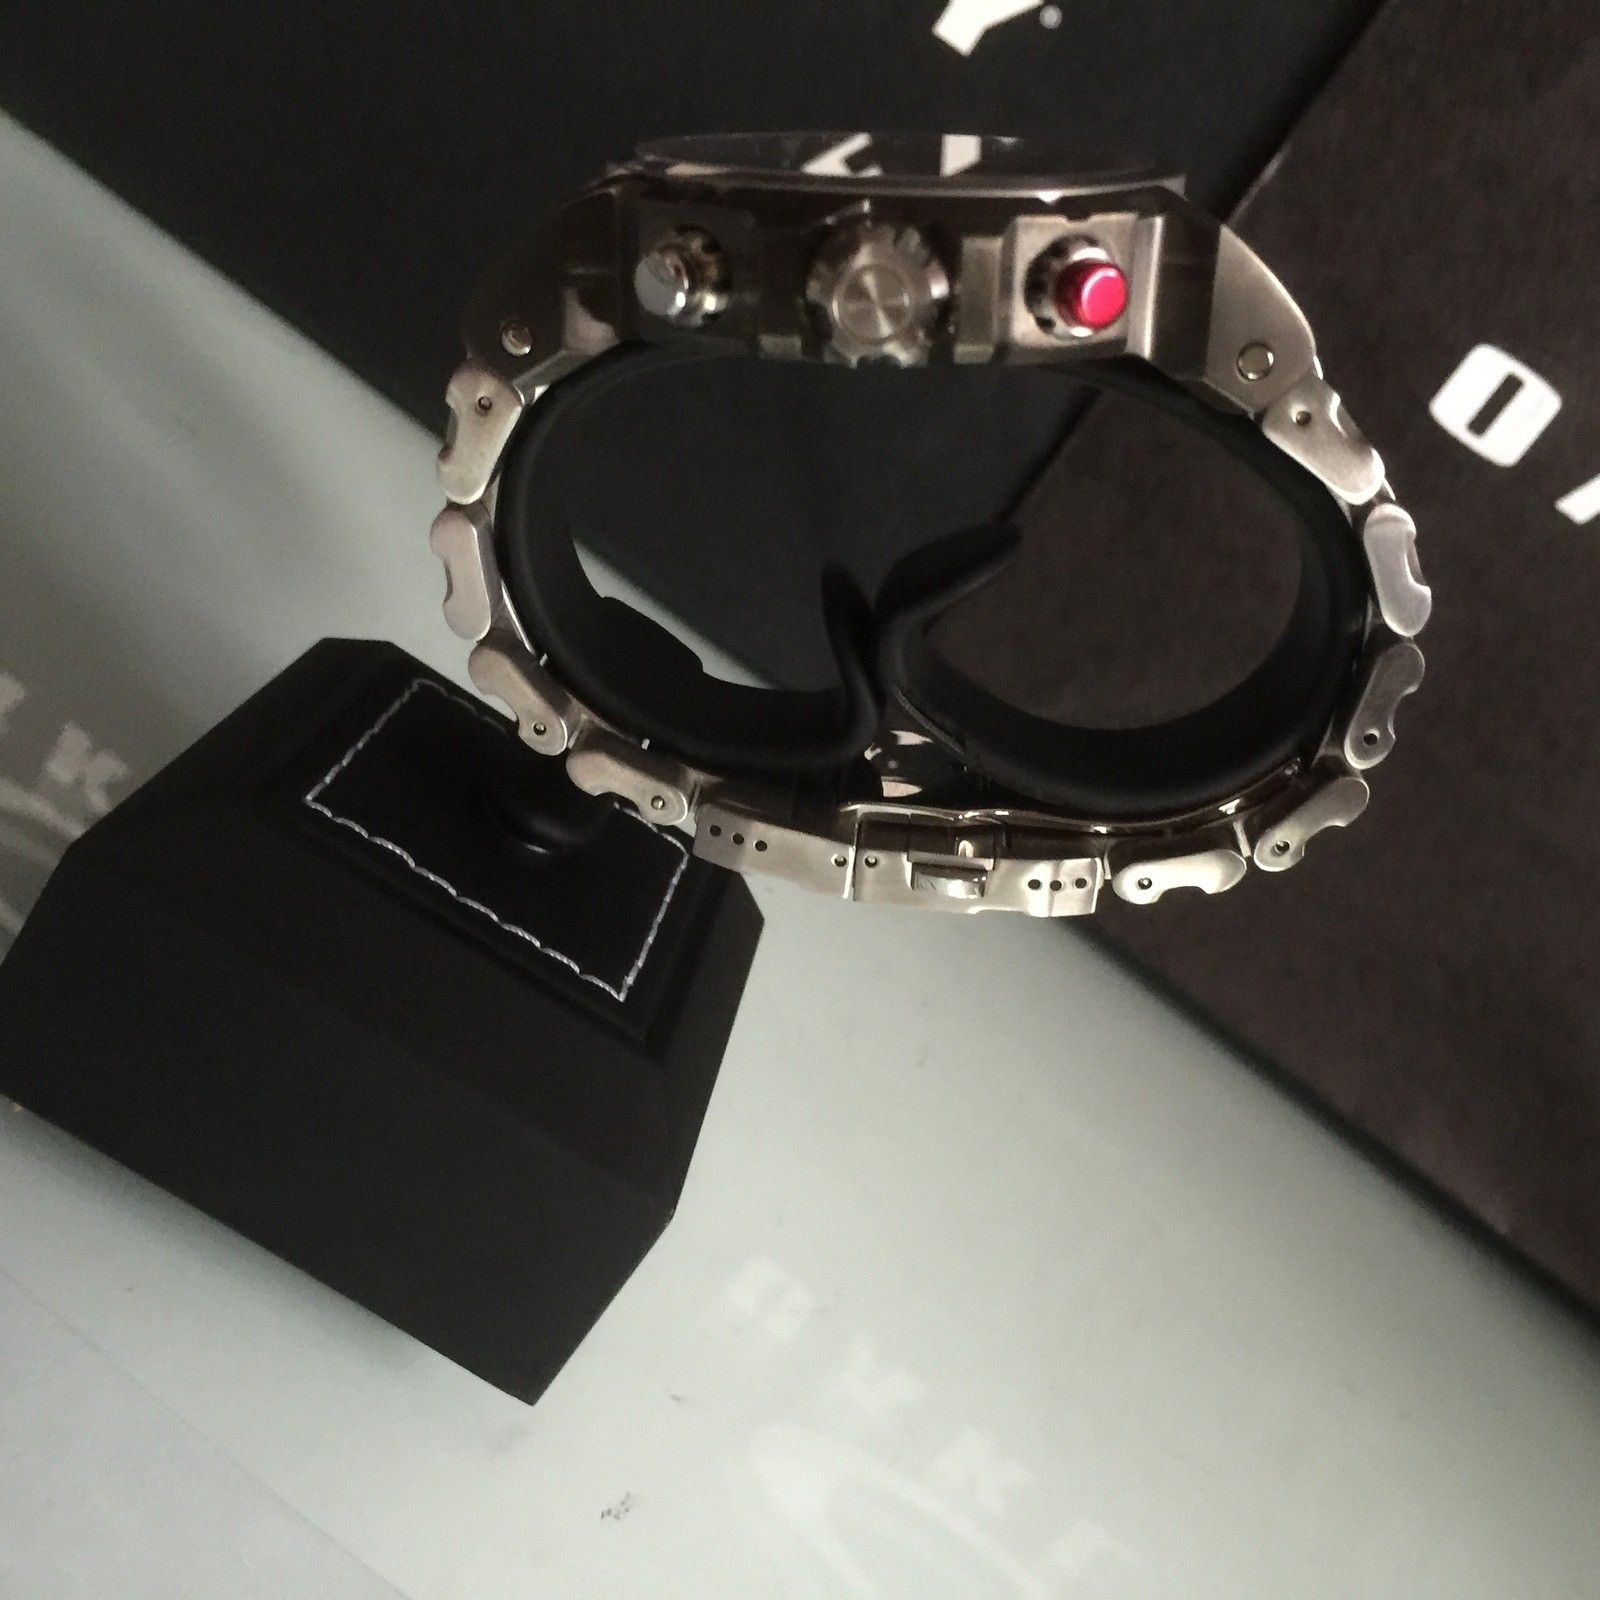 Are there different sizes of the top part of this watch stand? - IMG_0137.JPG